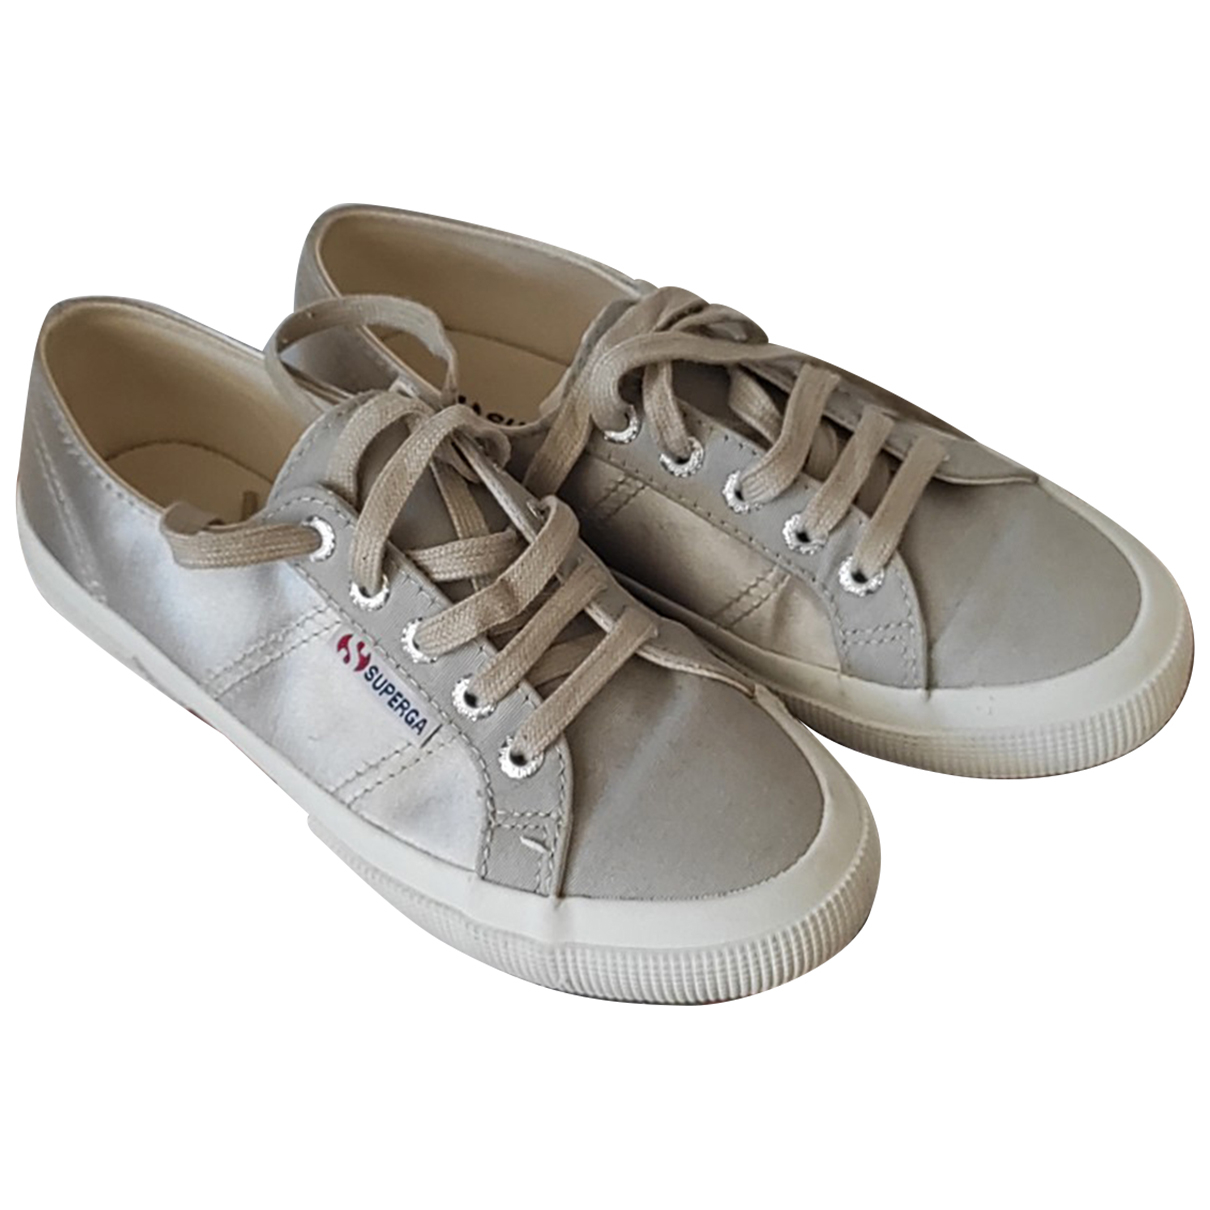 Superga \N Sneakers in  Beige Leinen